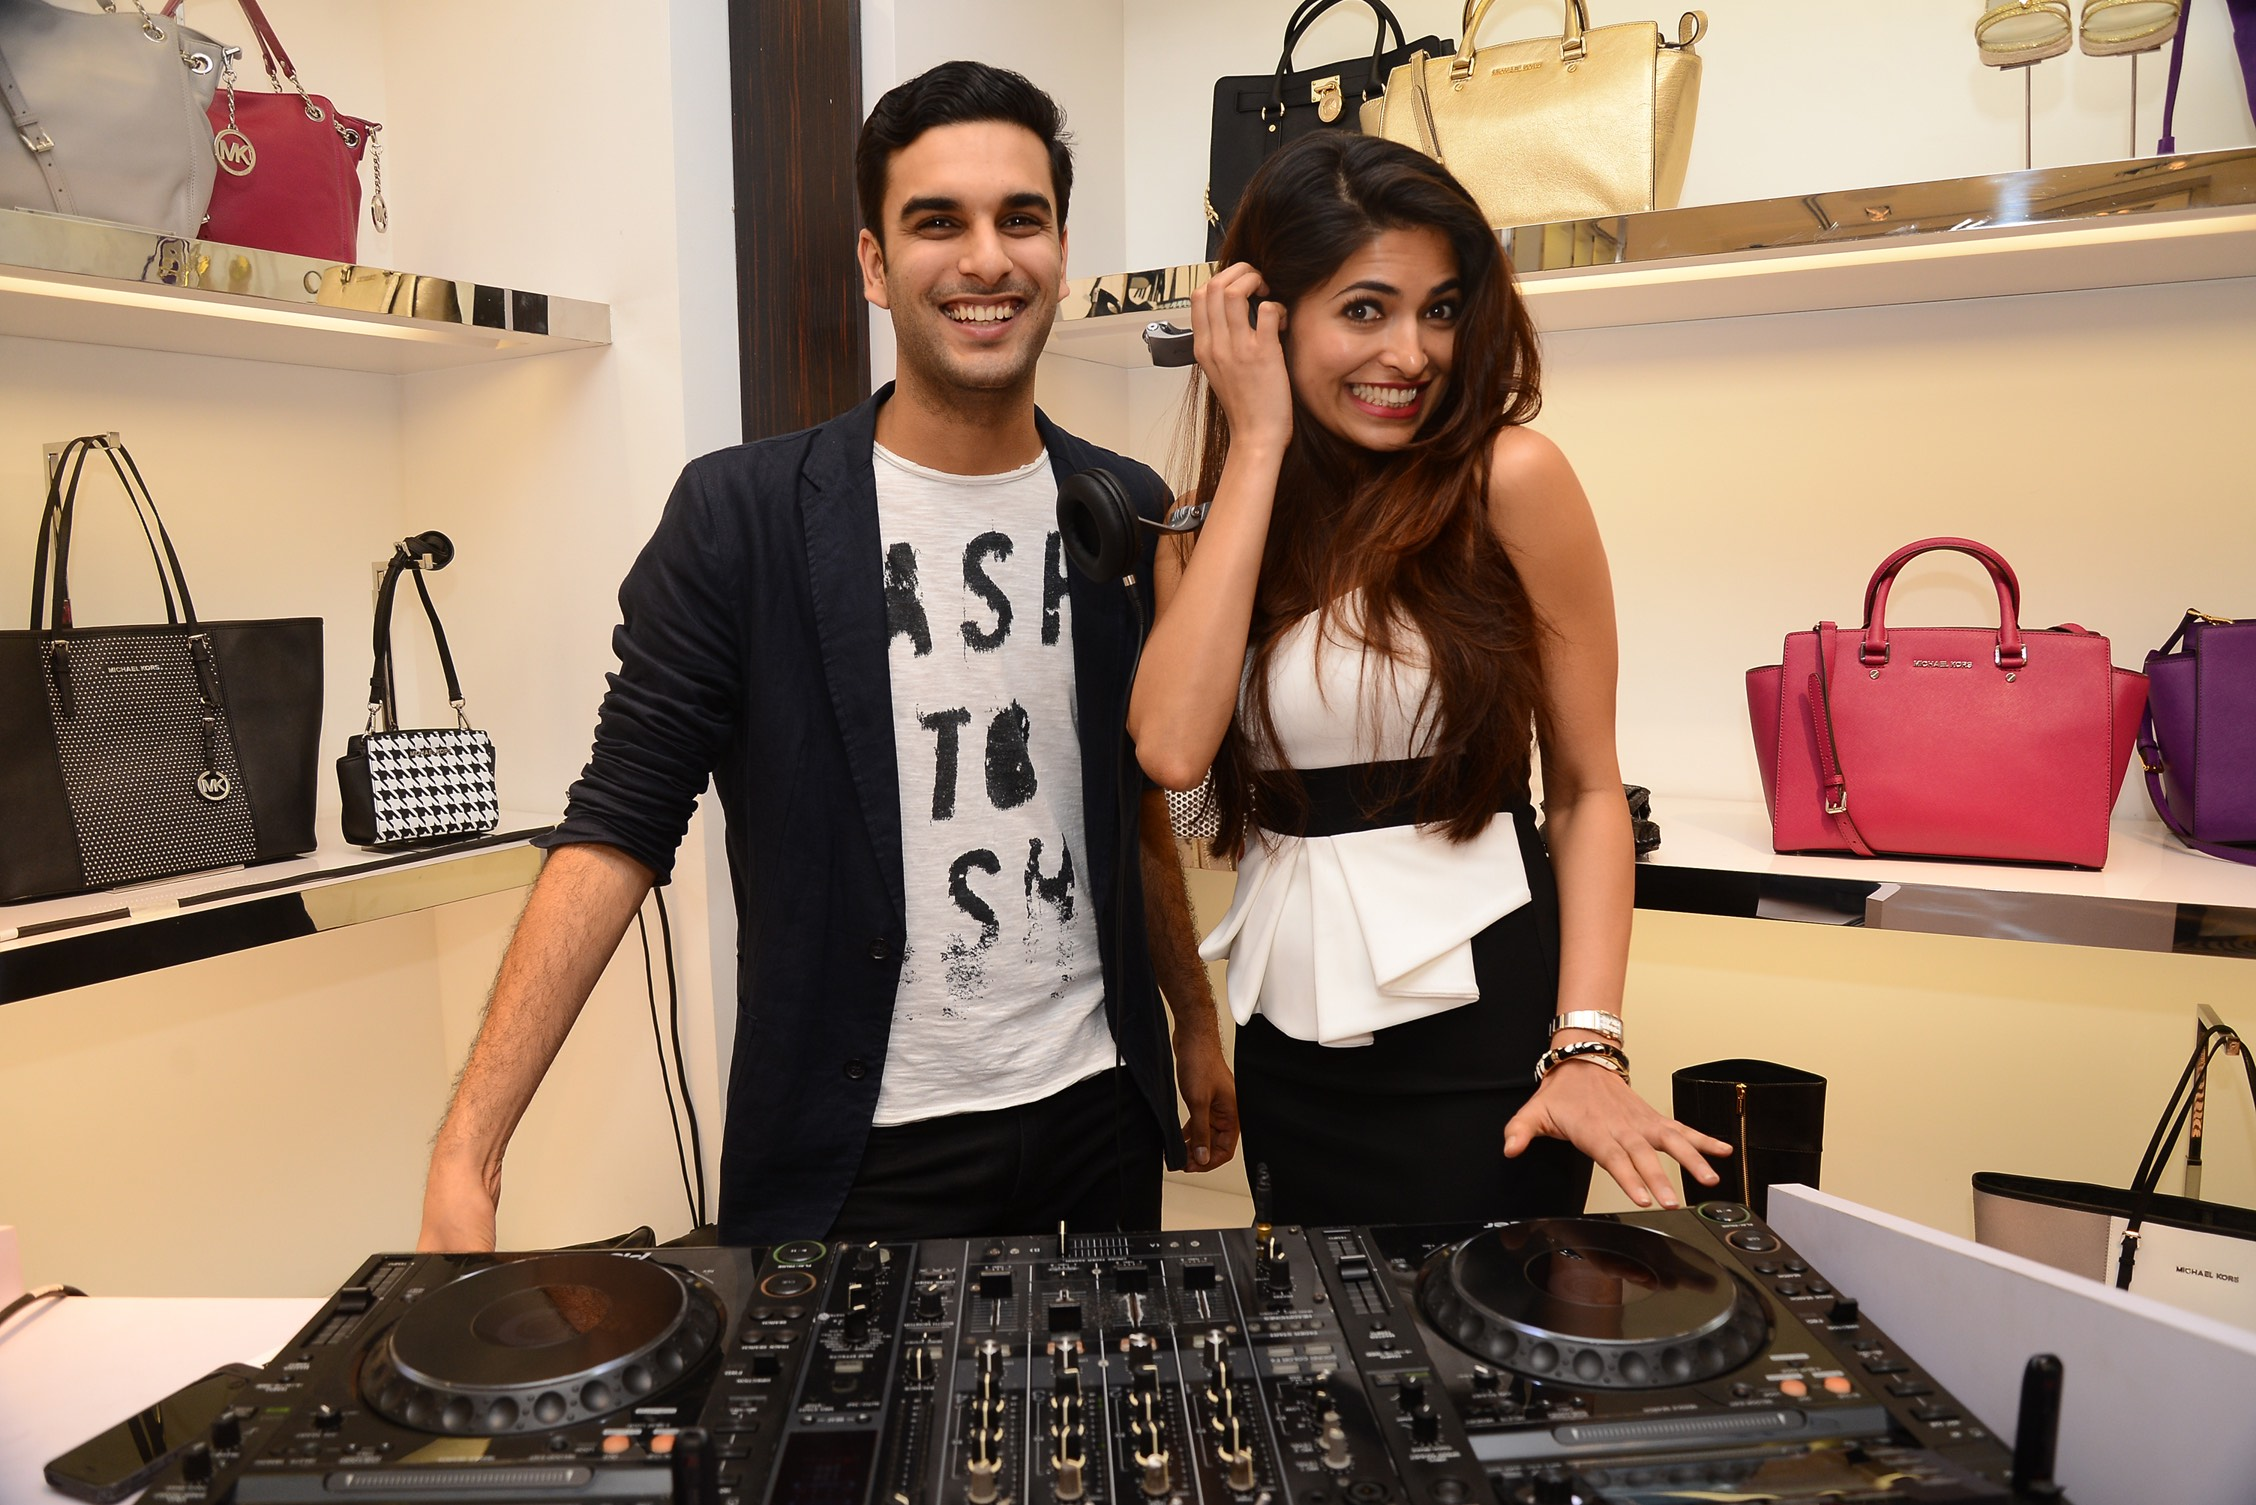 DJ Anish Sood and Parvathy Omanakuttan